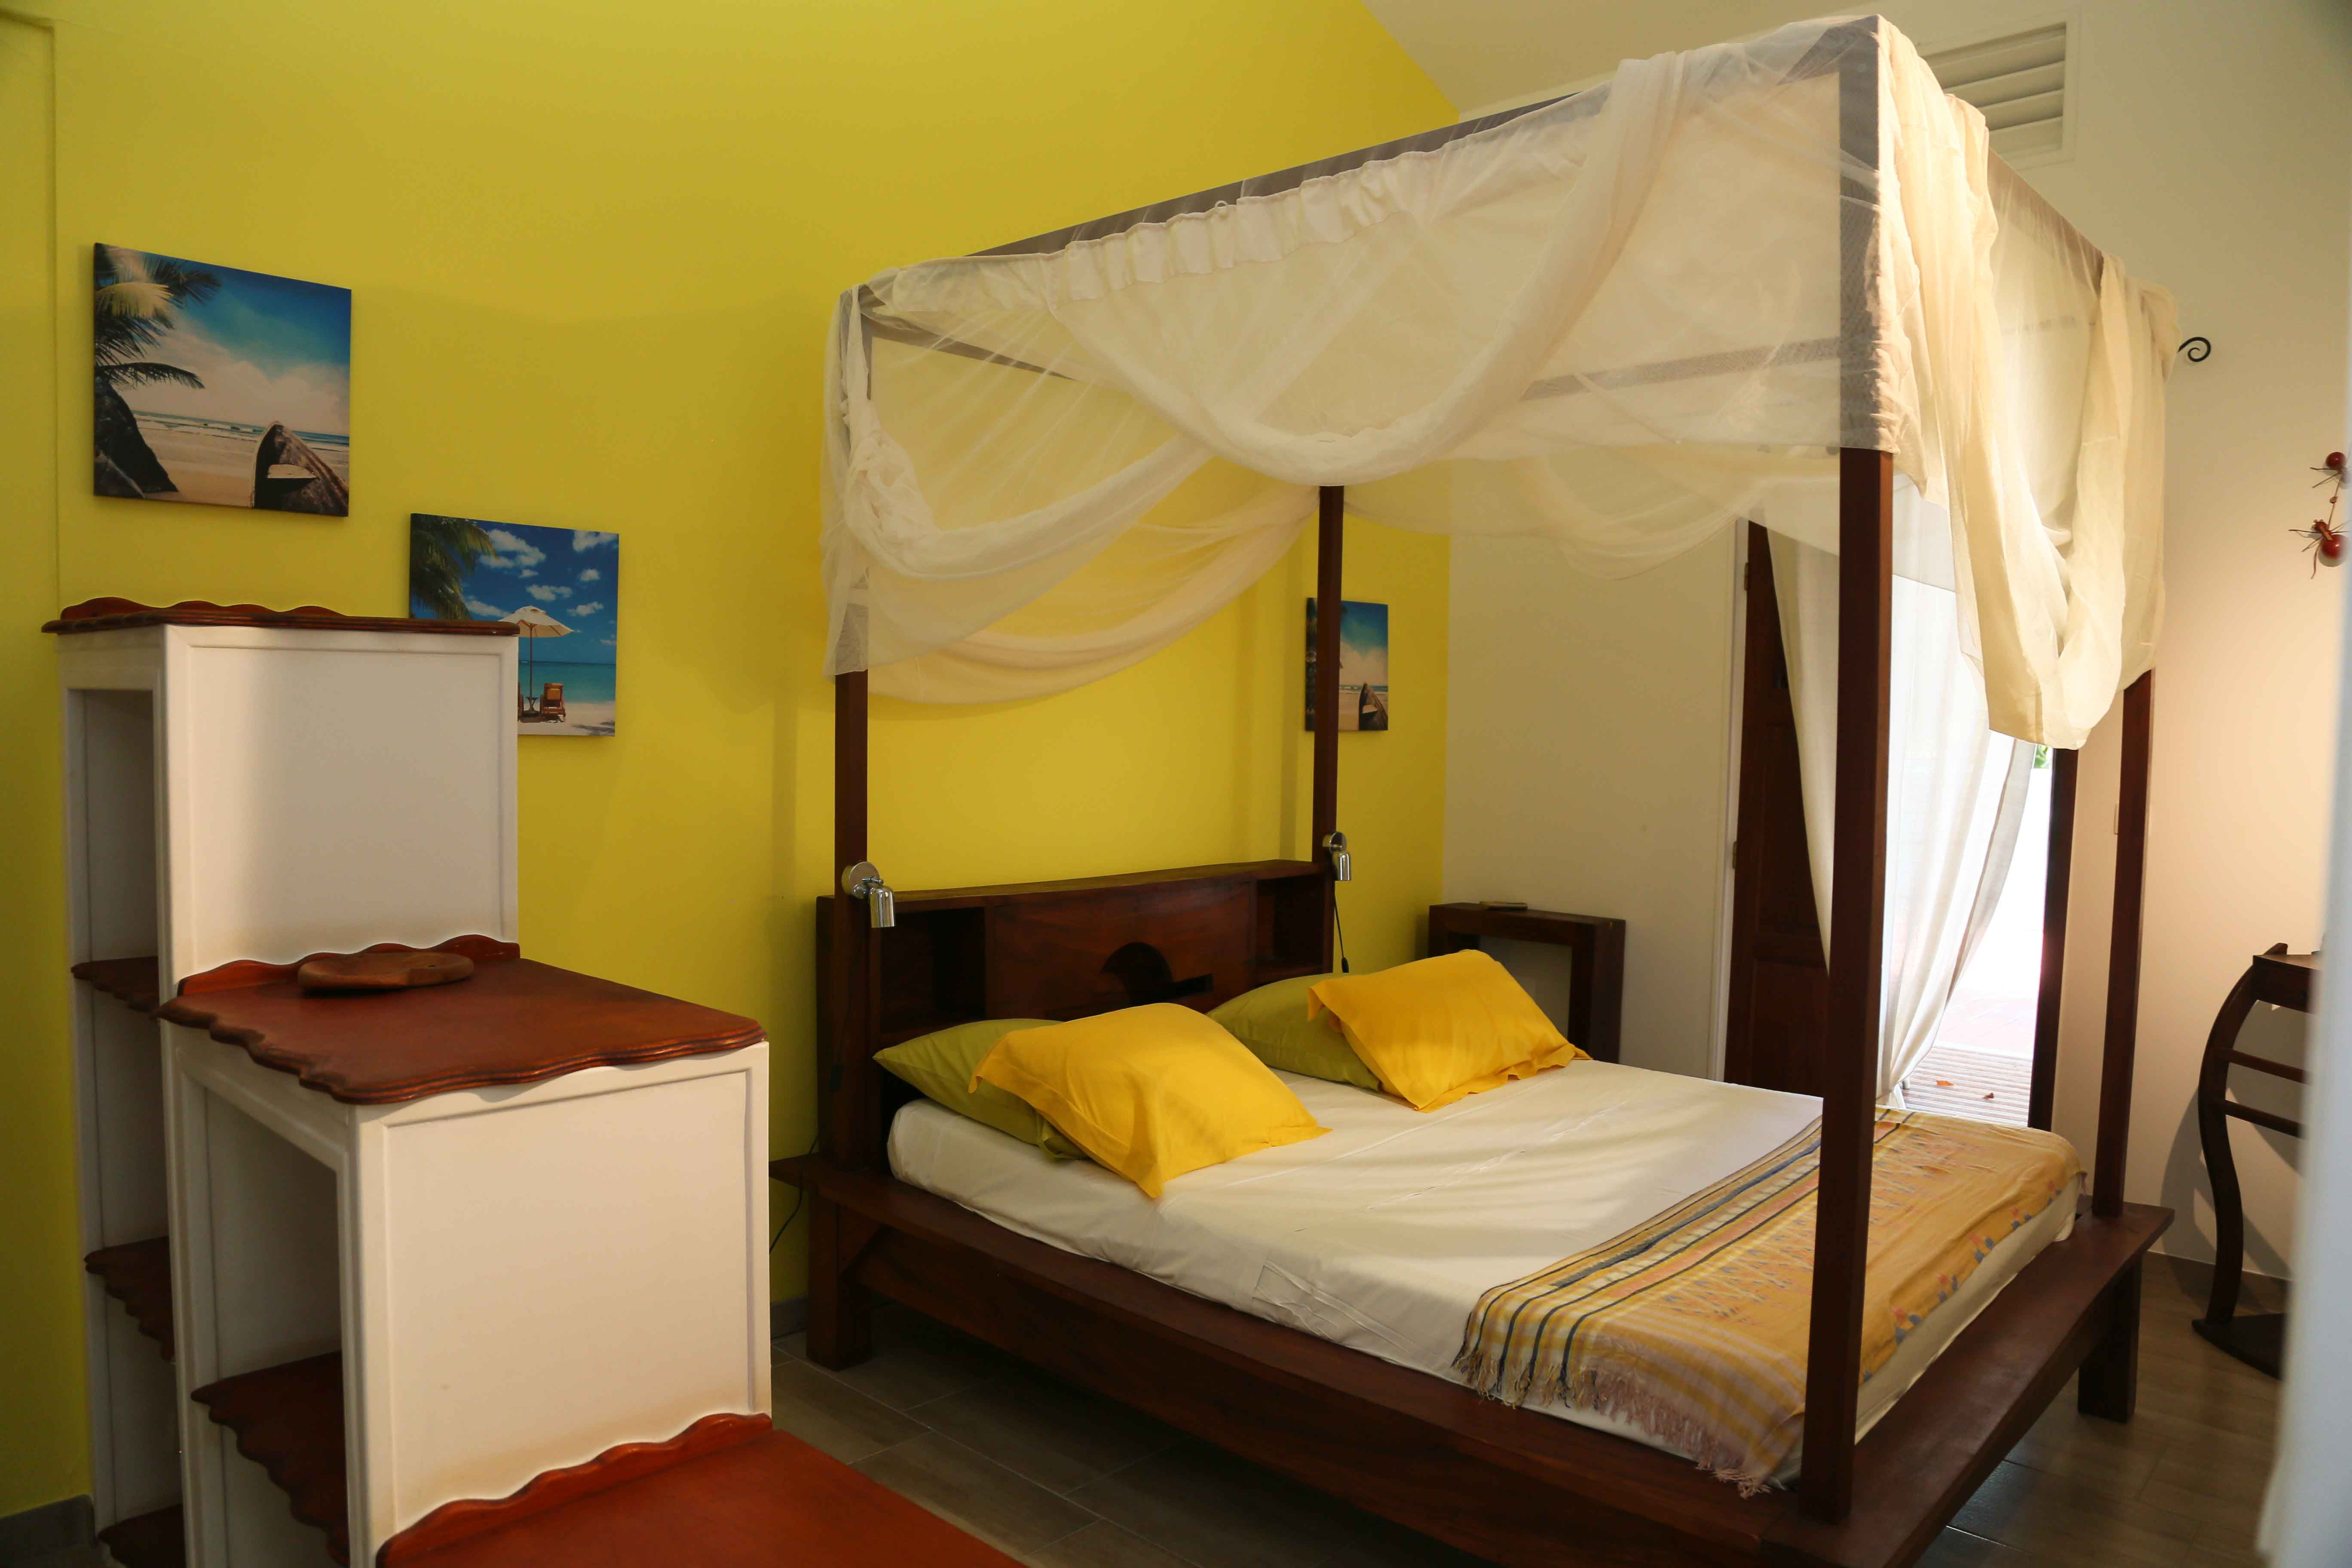 villa Kanouan's room with yellow walls and double bed